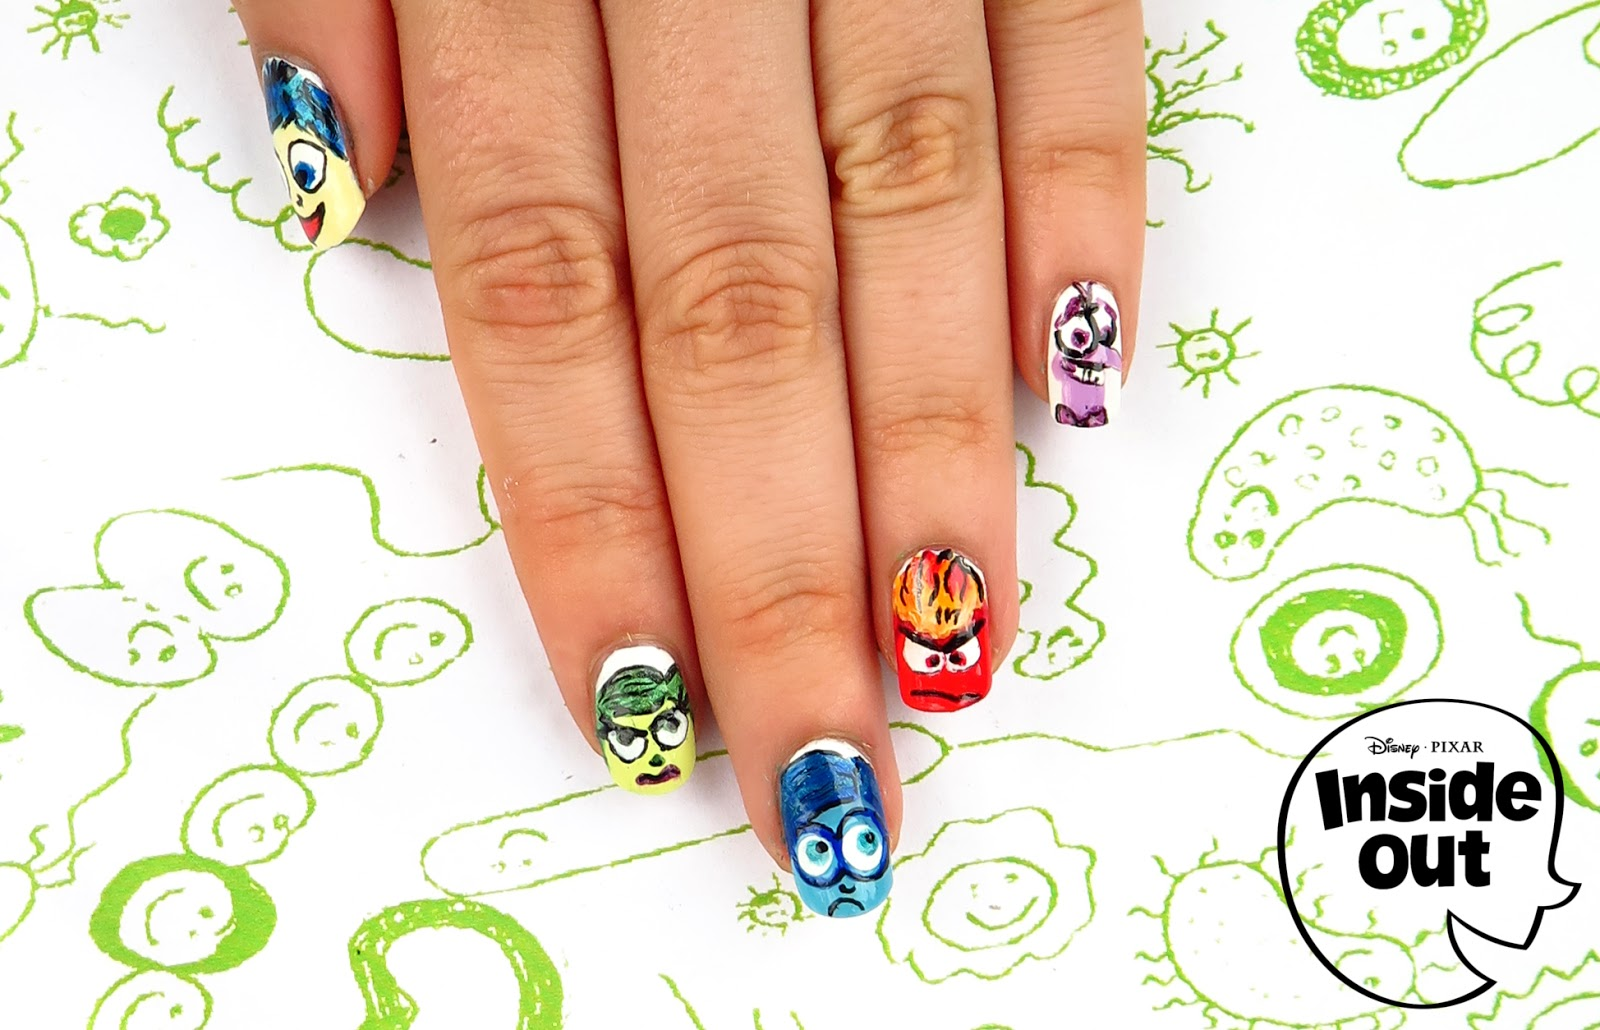 85ad7d0eac1a Joy sadness anger fear disgust inside out nails nailart drawing simple JPG  1600x1030 Joy anger inside